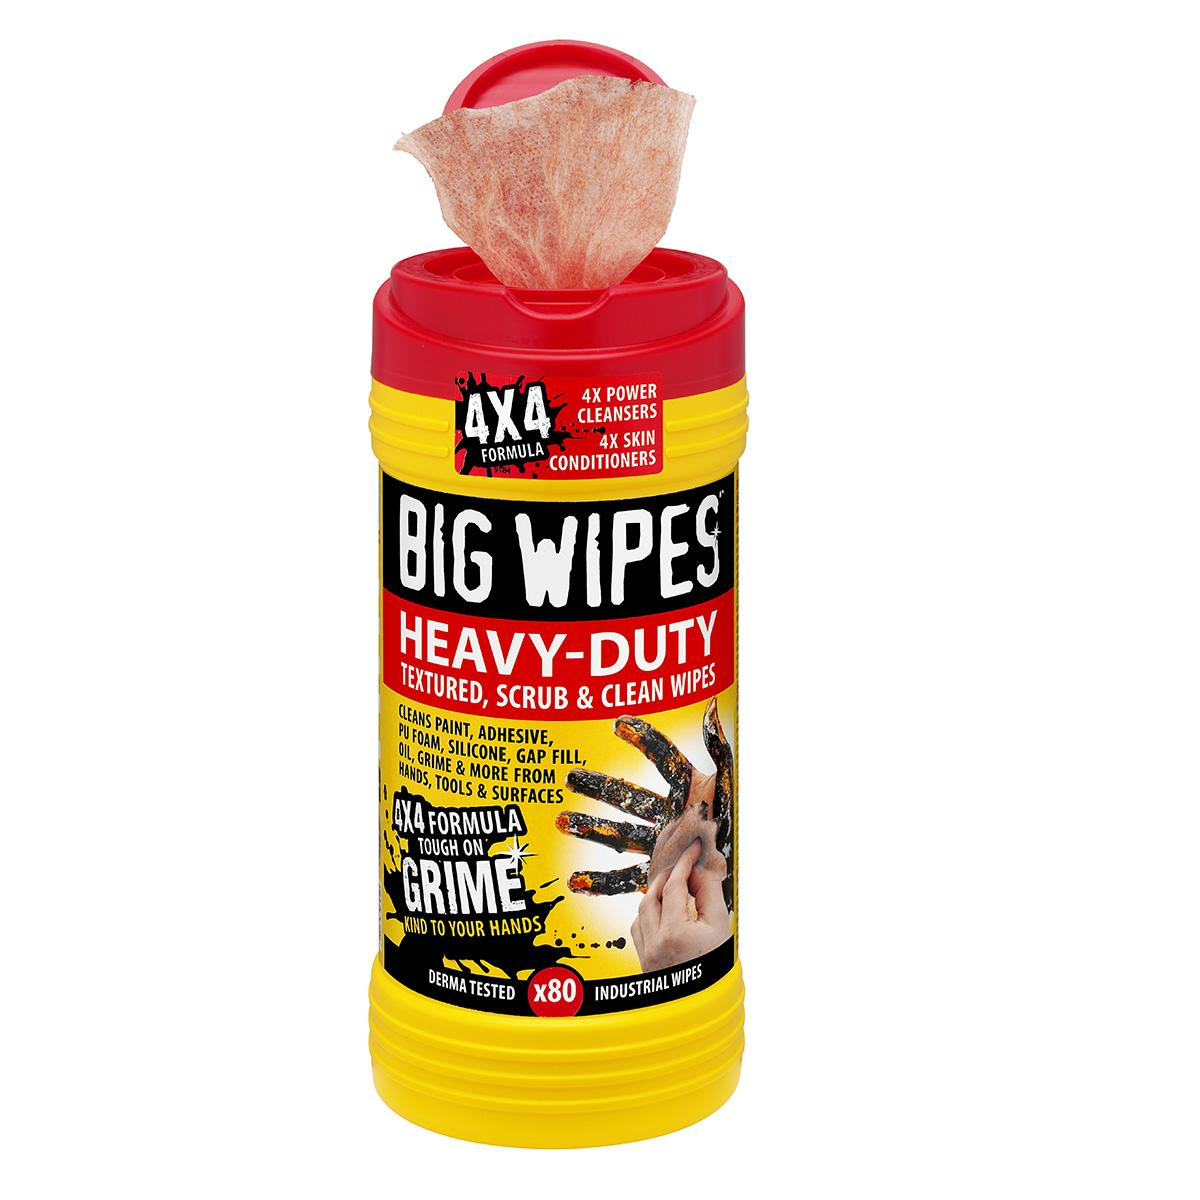 BIG WIPES Heavy Duty cleaning wipes (80ct)